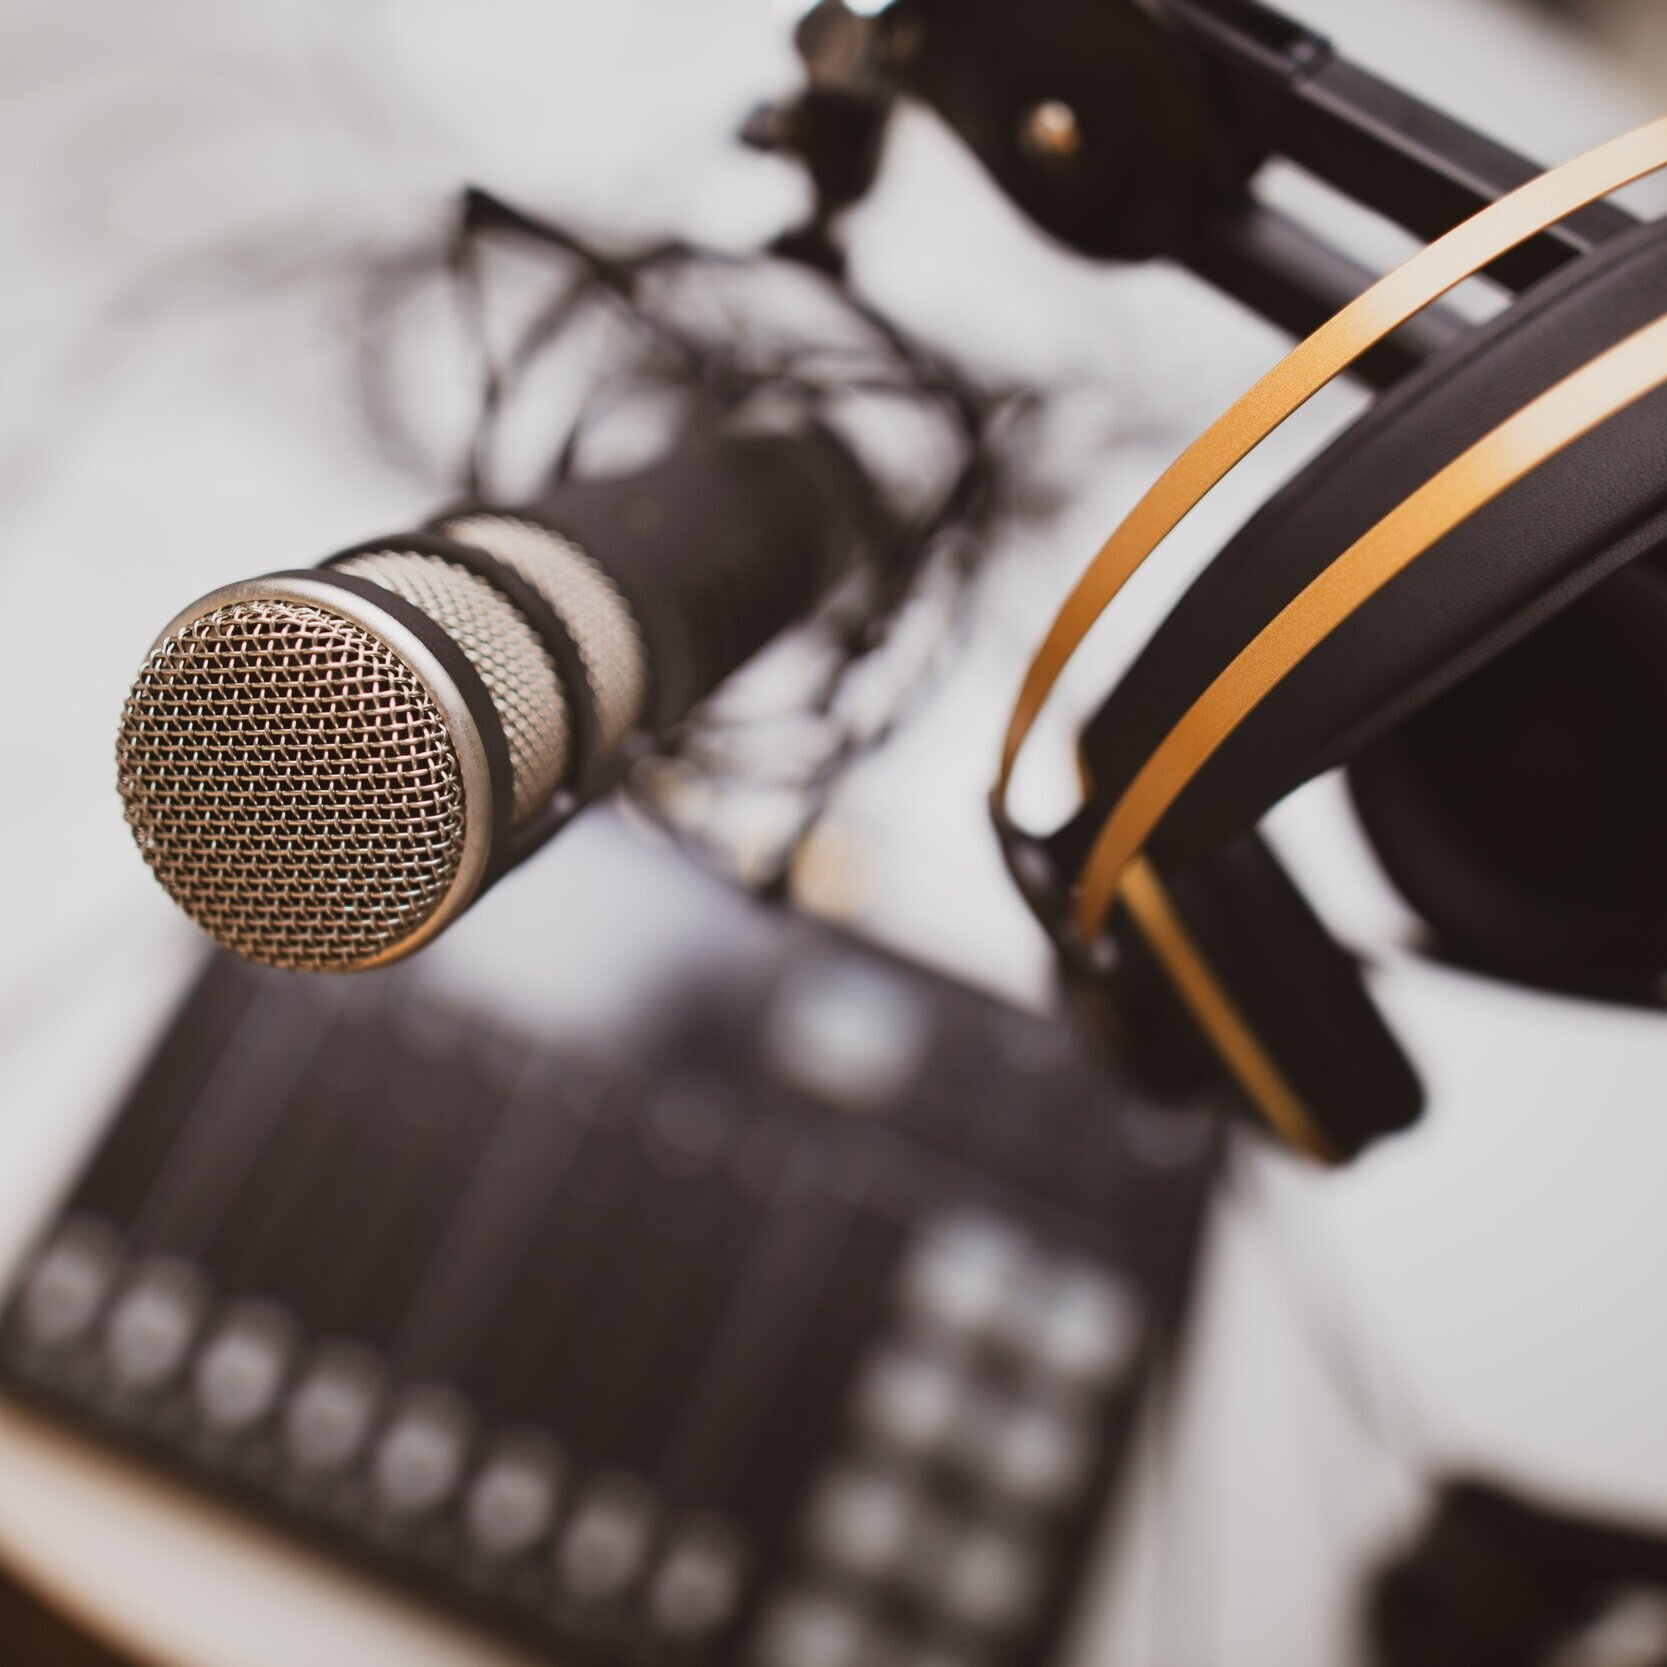 Podcast management - From $500